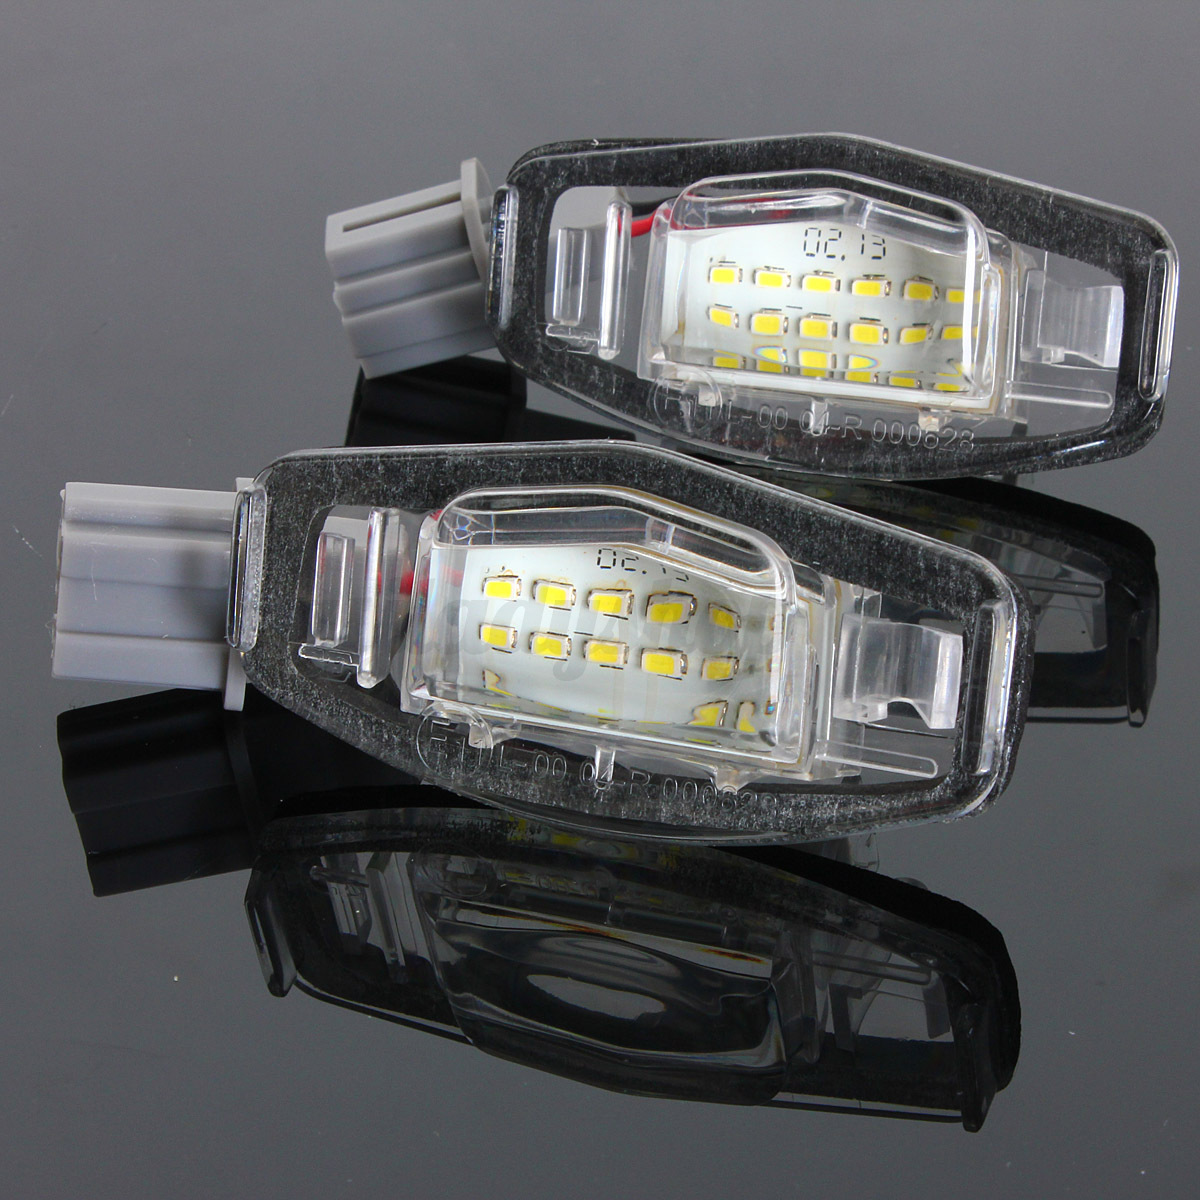 For Acura TL RL TSX RDX Honda Civic Accord 18 LED License